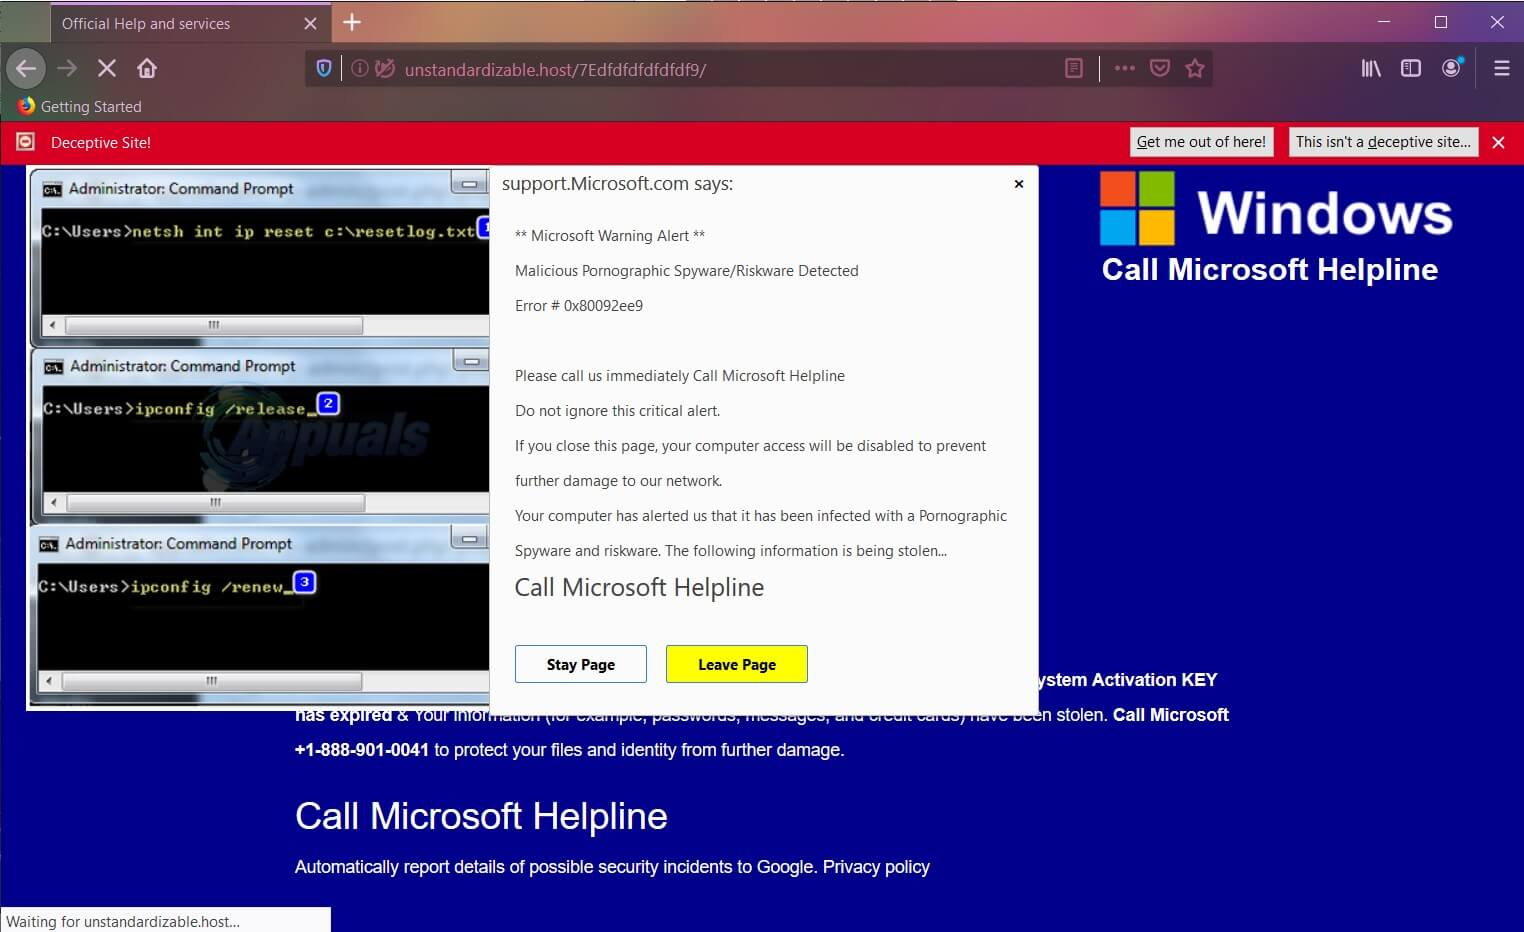 fake Error # 0x80092ee9 message call microsoft helpline scam removal sensorstechforum